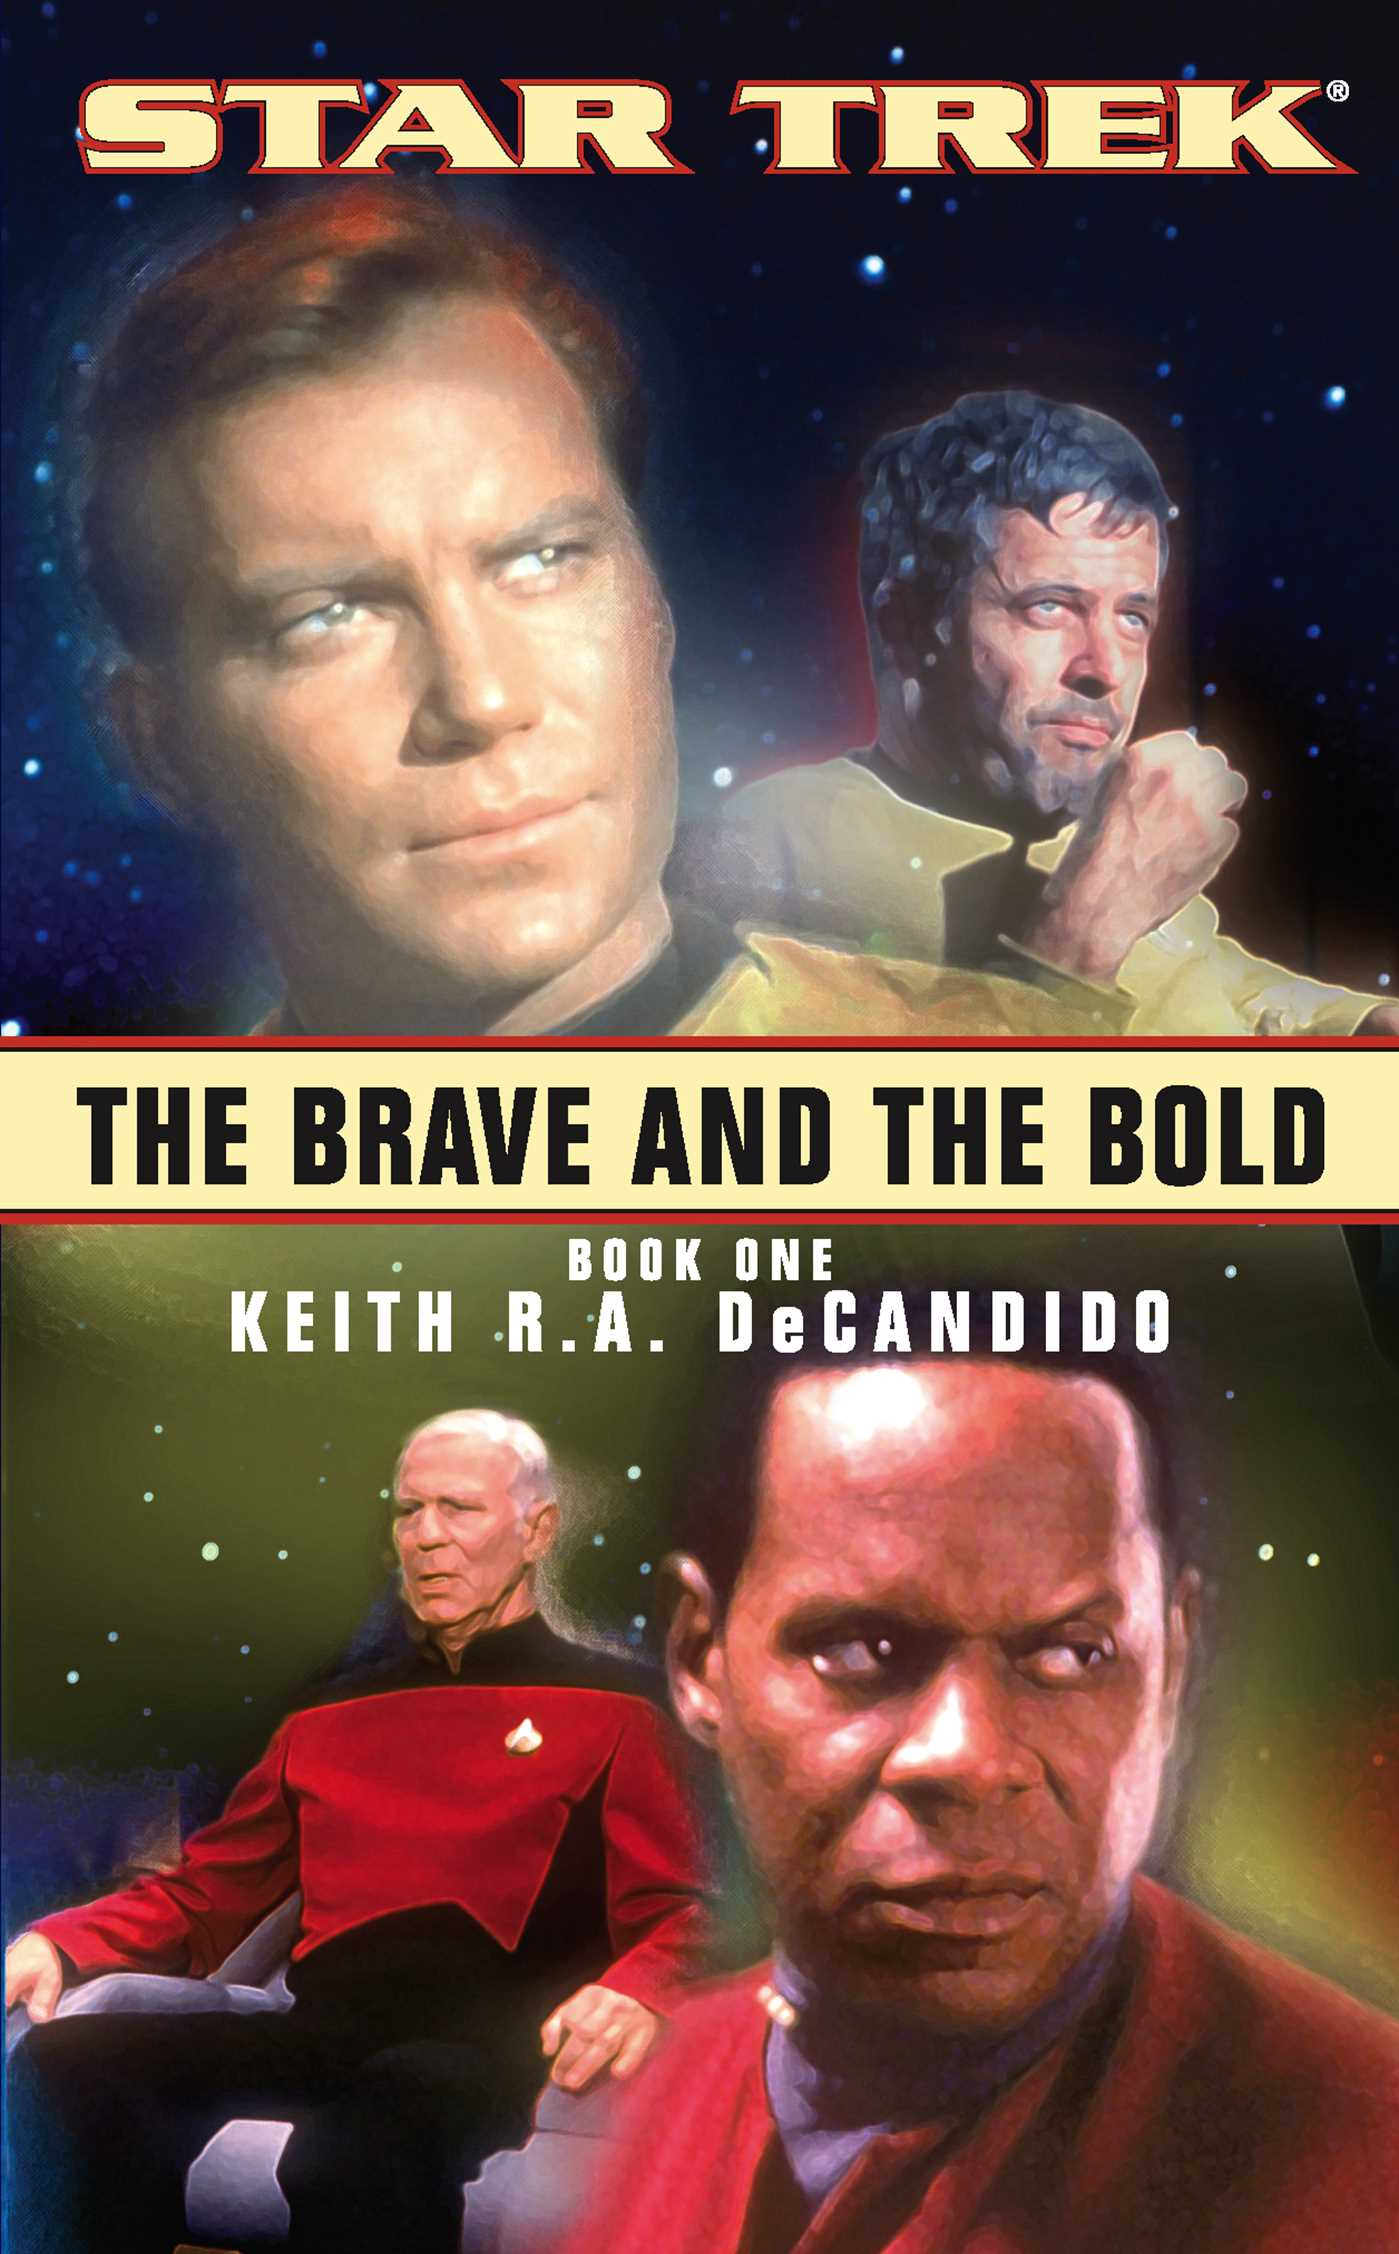 The brave and the bold book one 9780743419246 hr